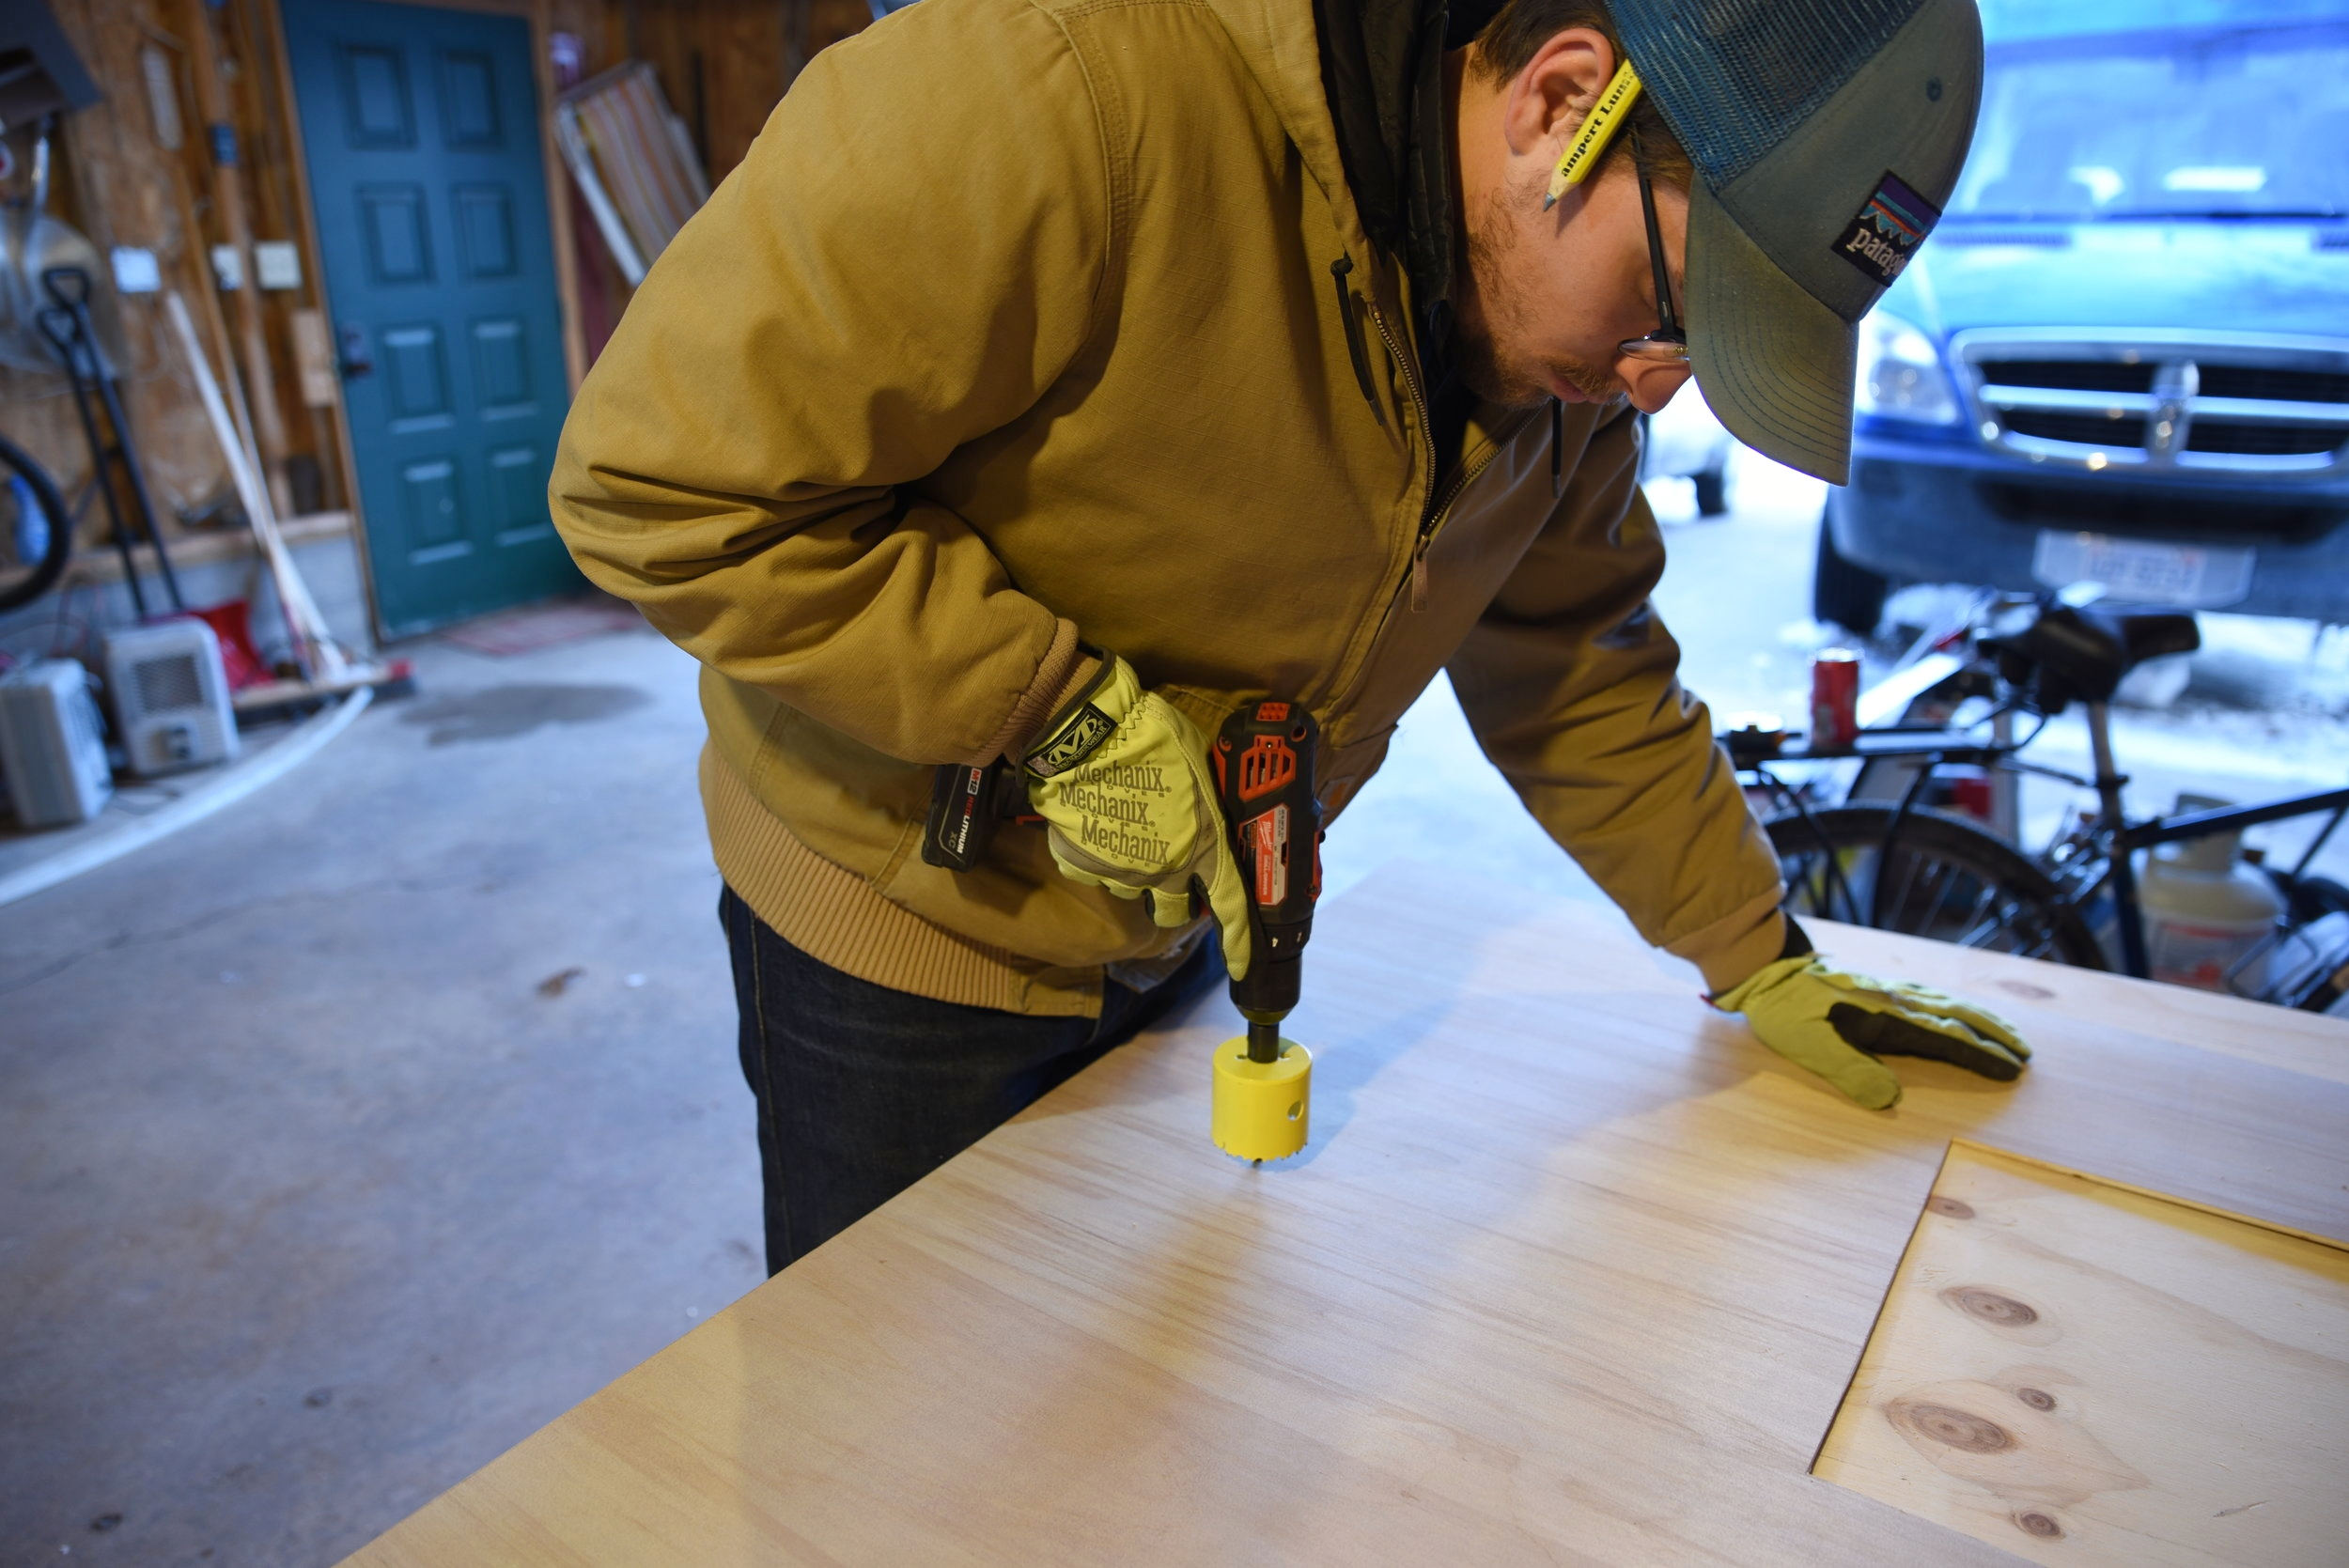 Ian uses a hole saw to cut the holes for the solar-powered, 12-volt lights.